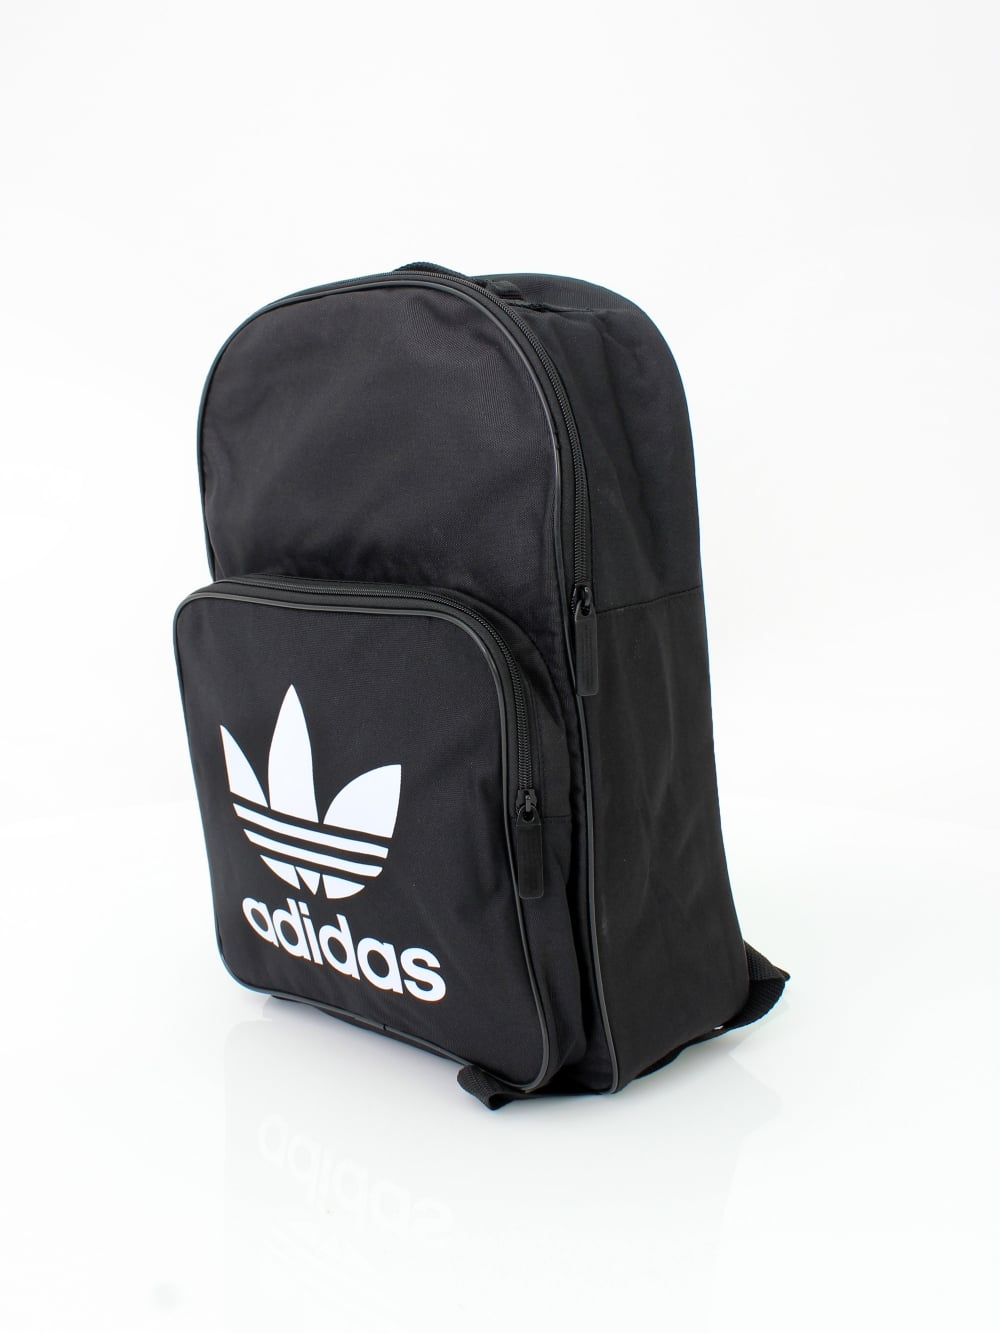 3aa5a32d1dc0 Adidas Originals Classic Burgundy Backpack With Trefoil Logo- Fenix ...